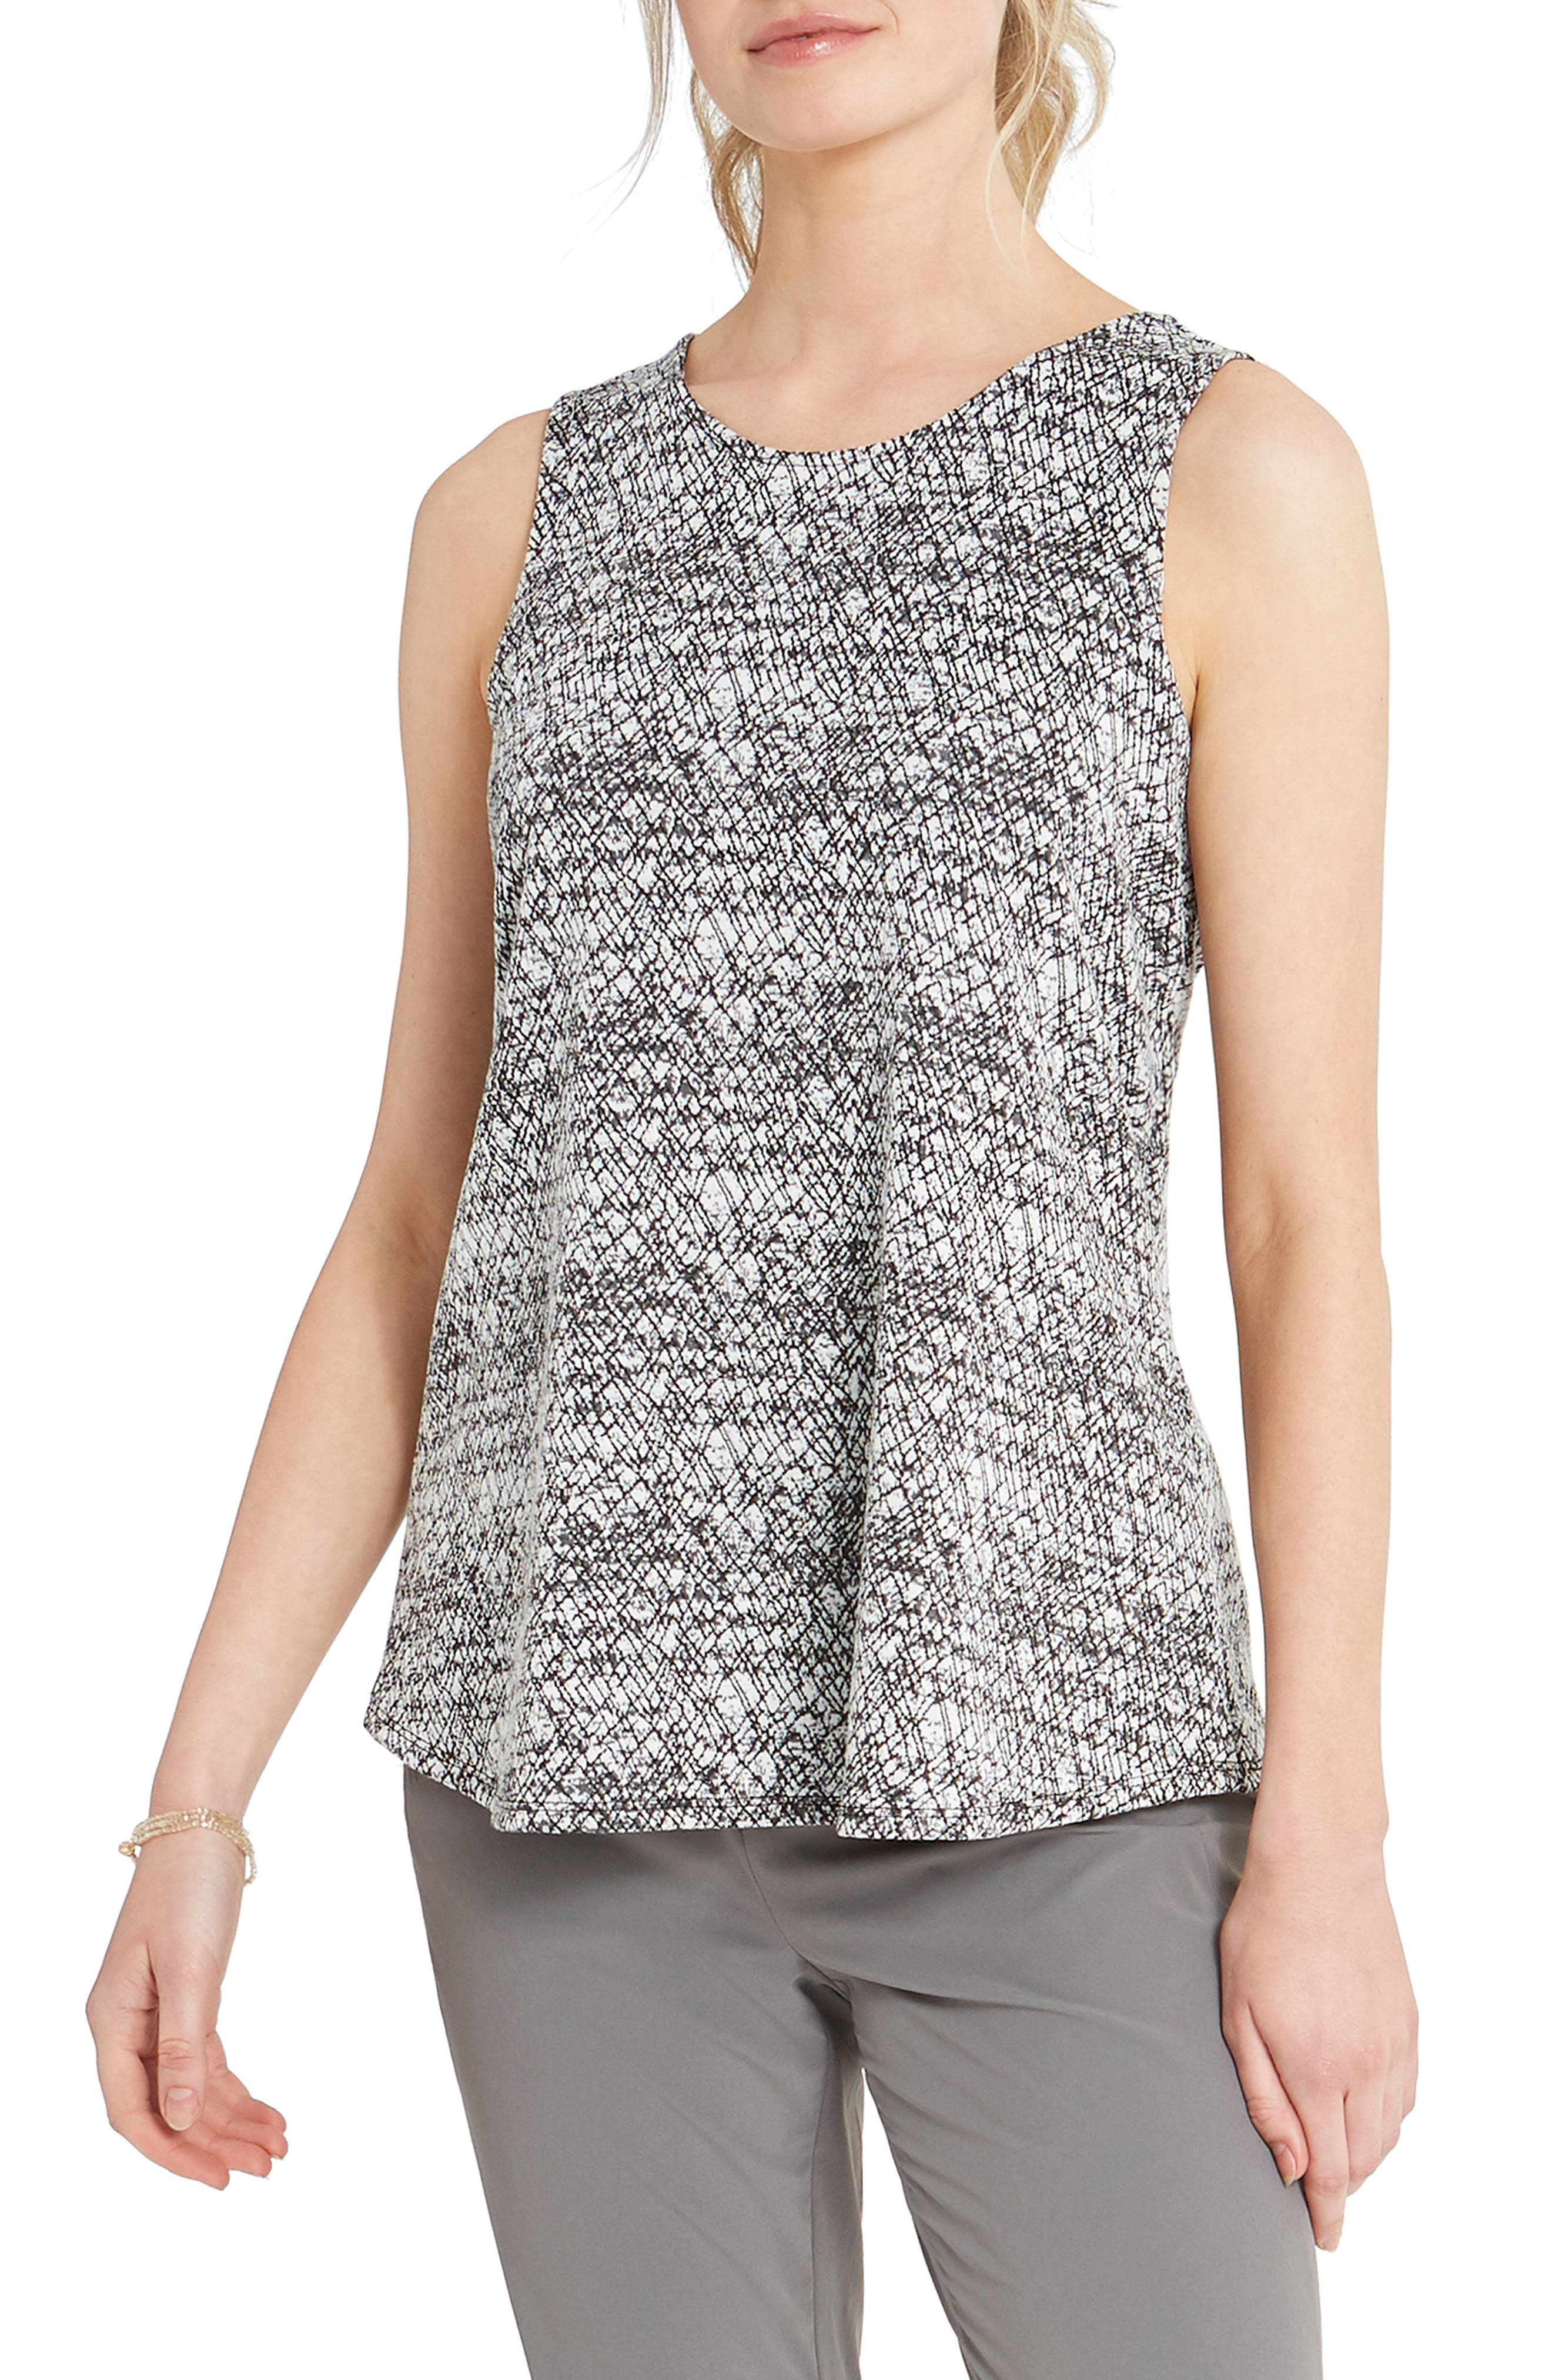 Graffiti-inspired patterning makes for an eye-catching top that\\\'s also easily paired as a neutral underpinning or wear-alone piece. Style Name: Nic+Zoe Cityside Tank. Style Number: 6098638. Available in stores.